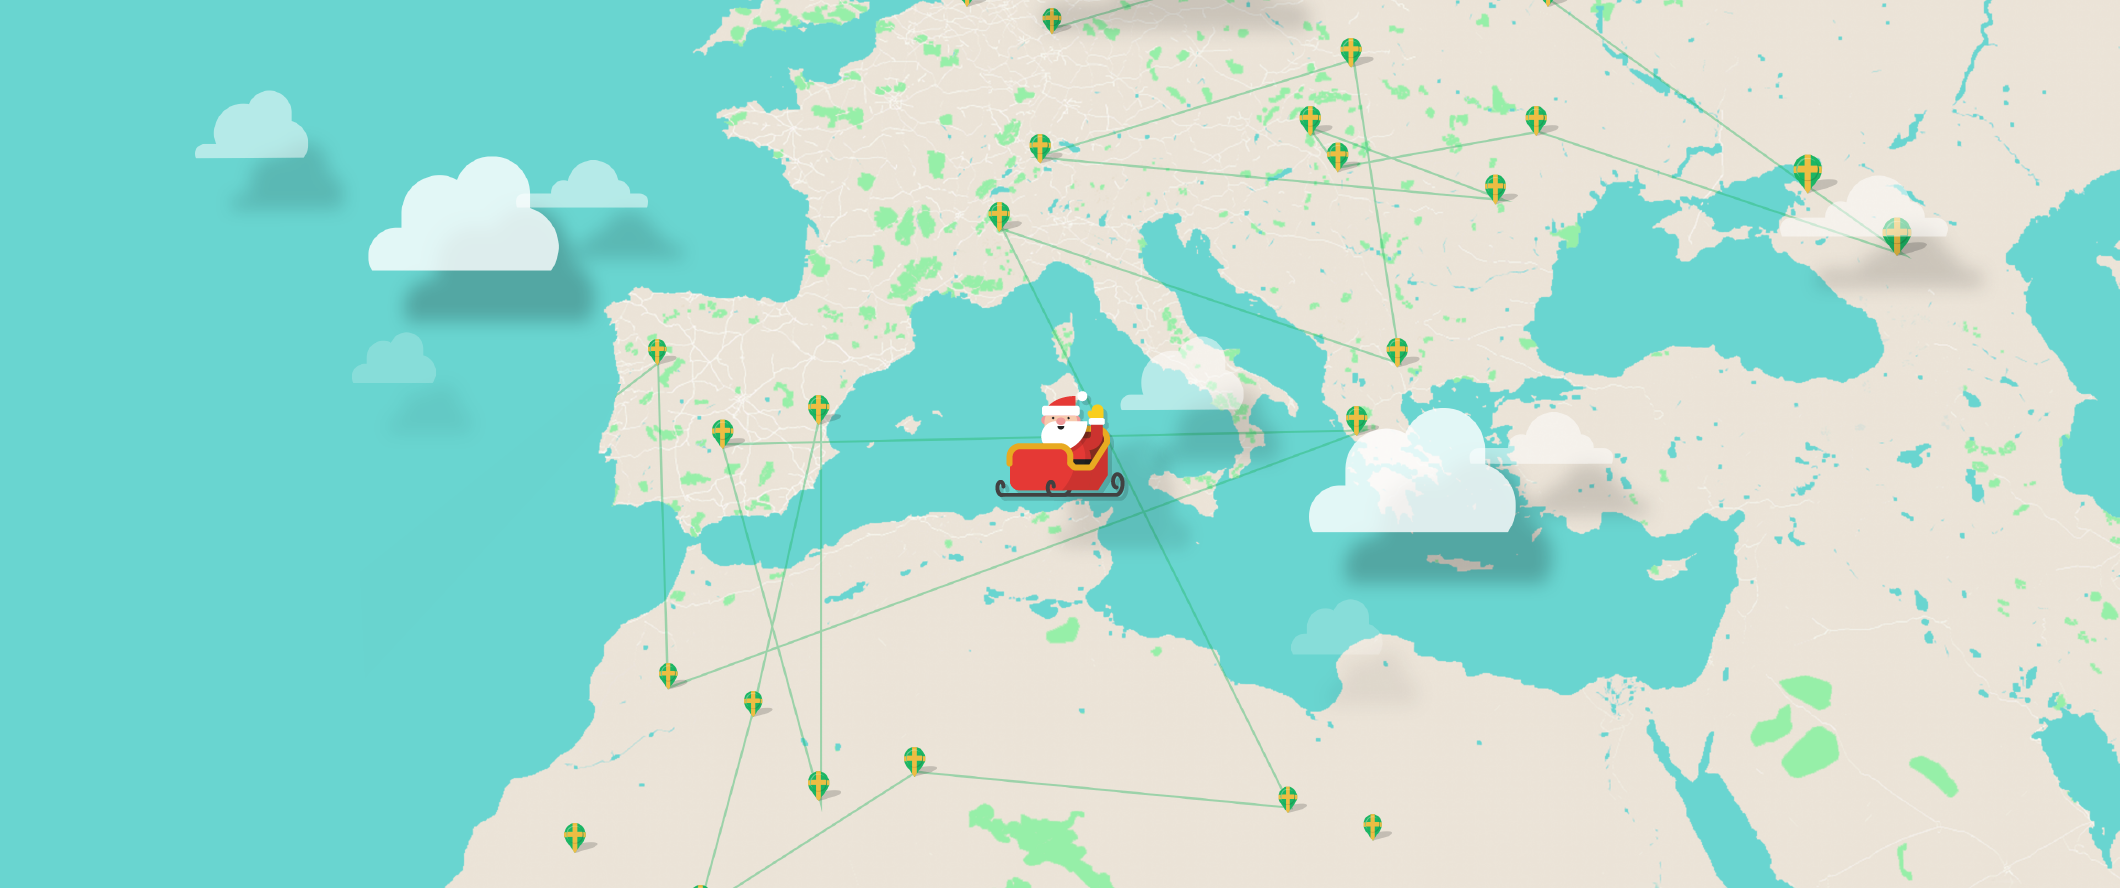 Google Santa Tracker — Moving to an Android App Bundle on